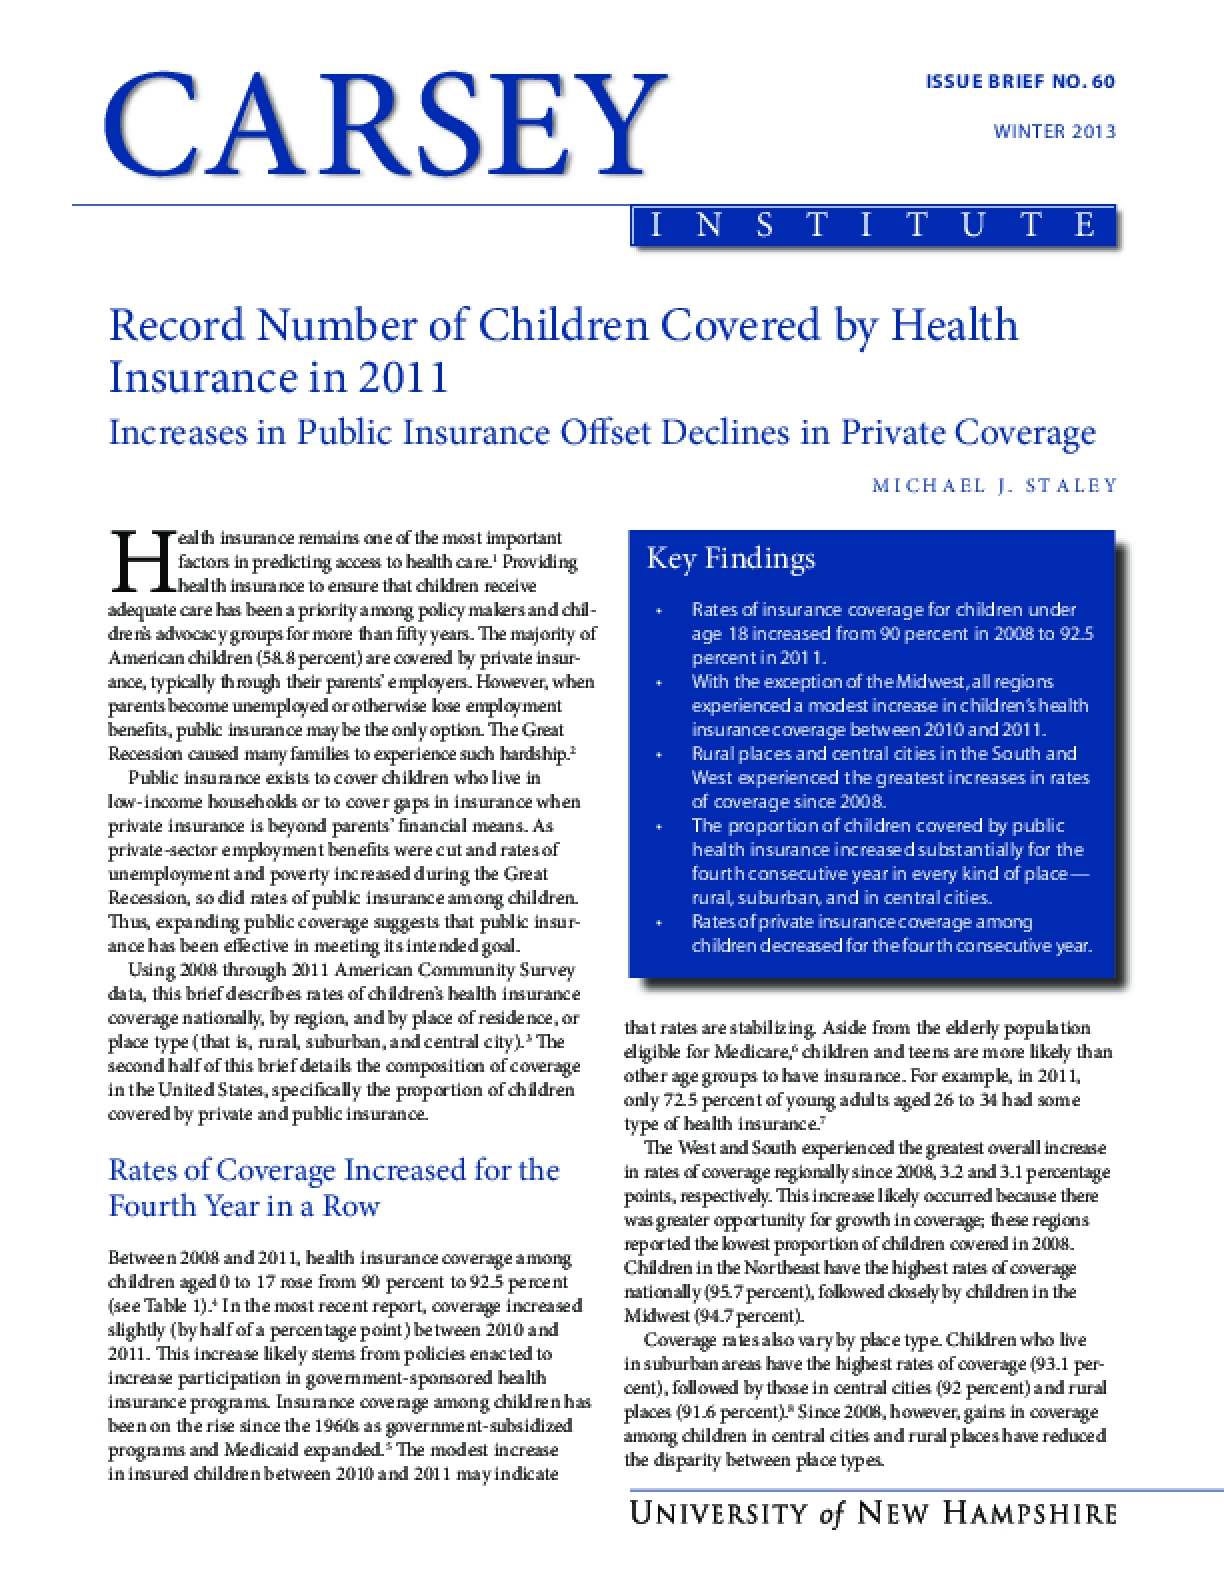 Record Number of Children Covered by Health Insurance in 2011